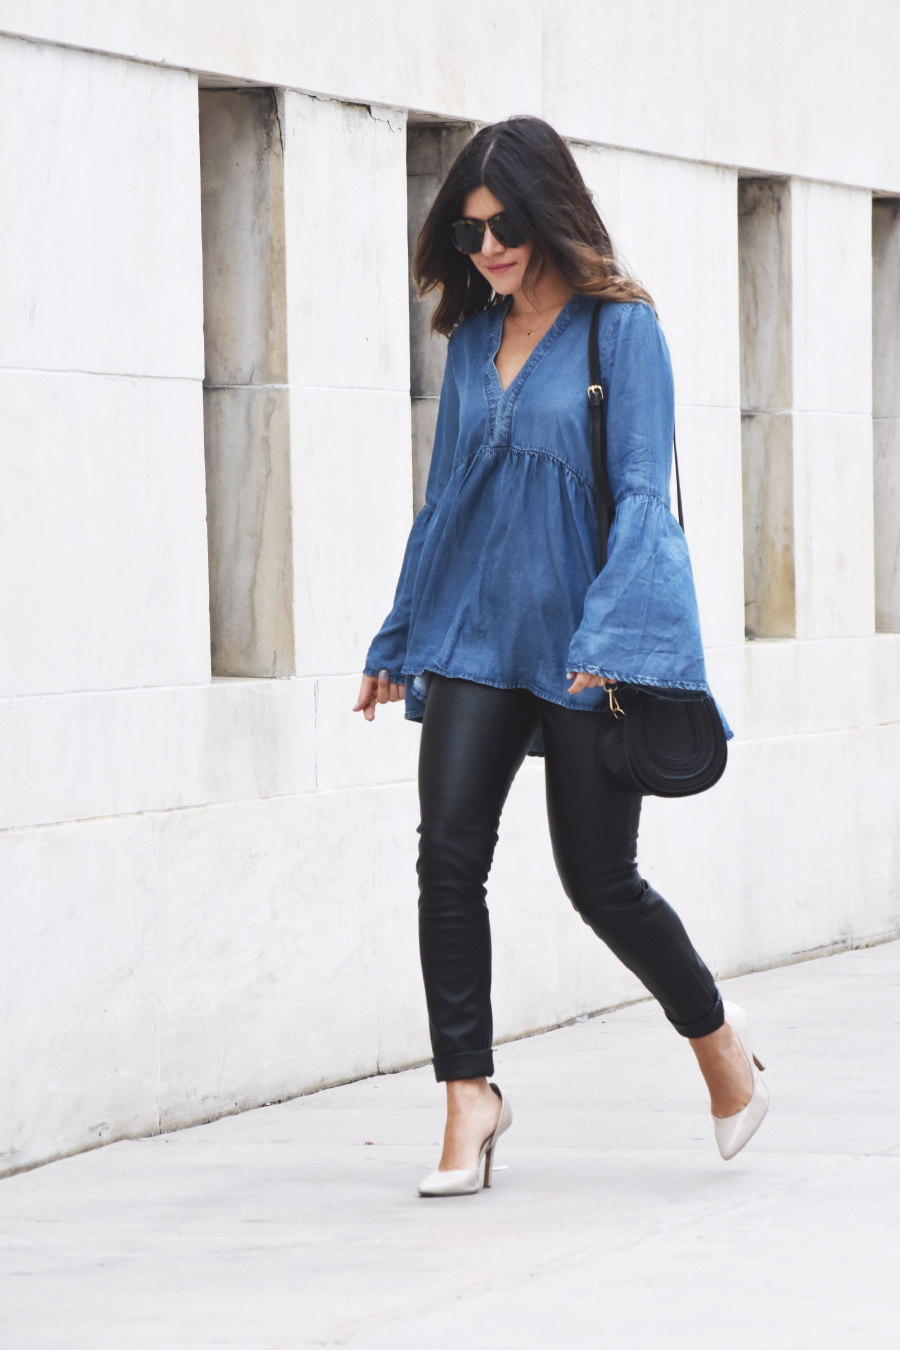 denim top and leather pants